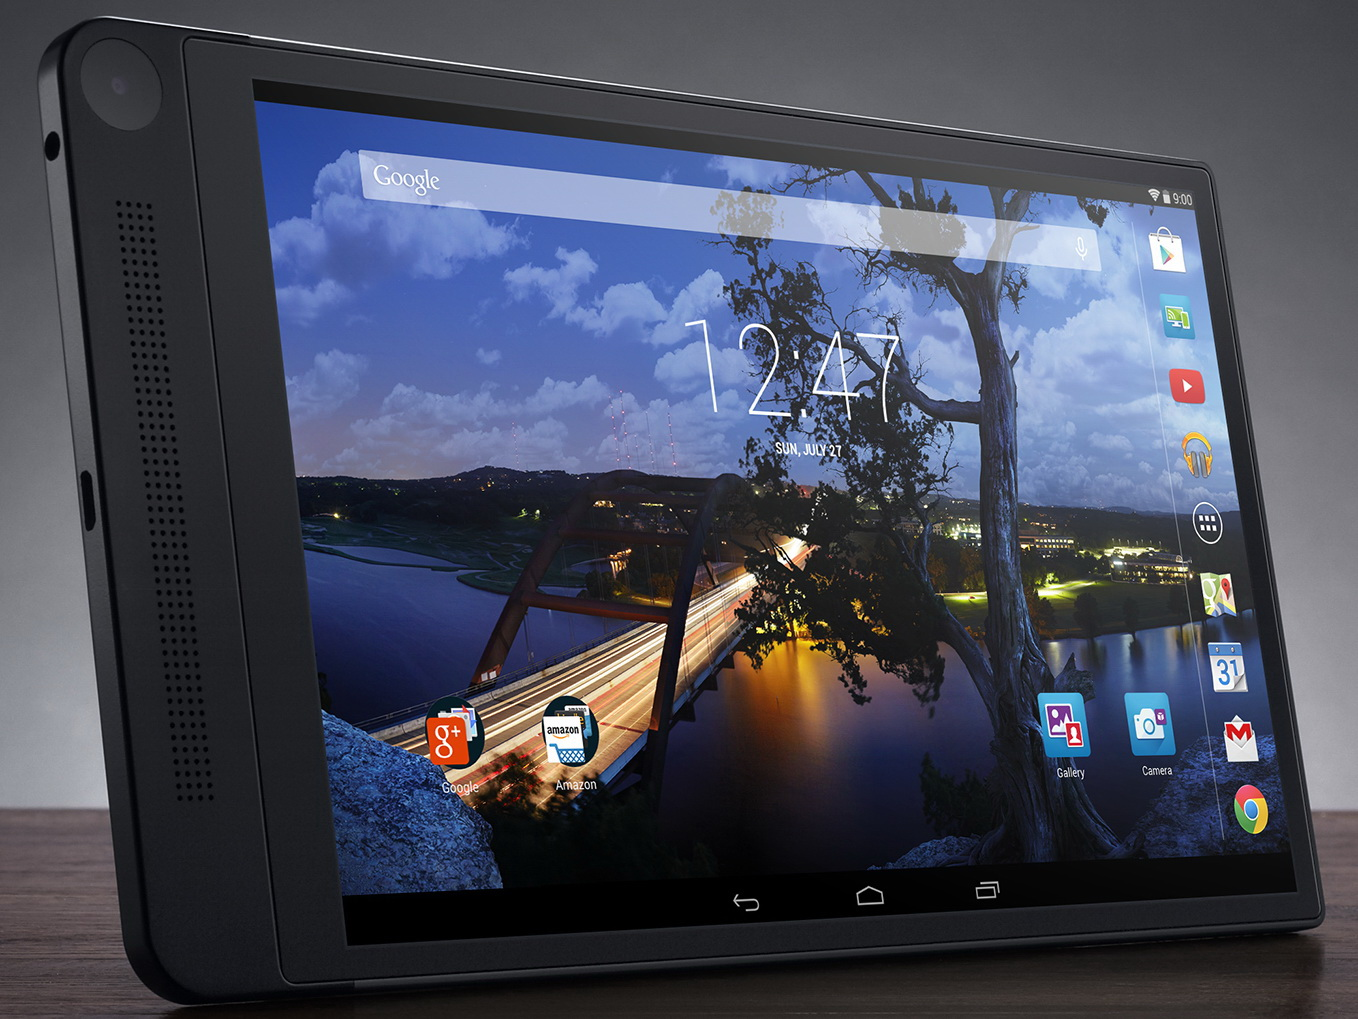 dell venue 8 7000 series 6 millimeter flaches android. Black Bedroom Furniture Sets. Home Design Ideas